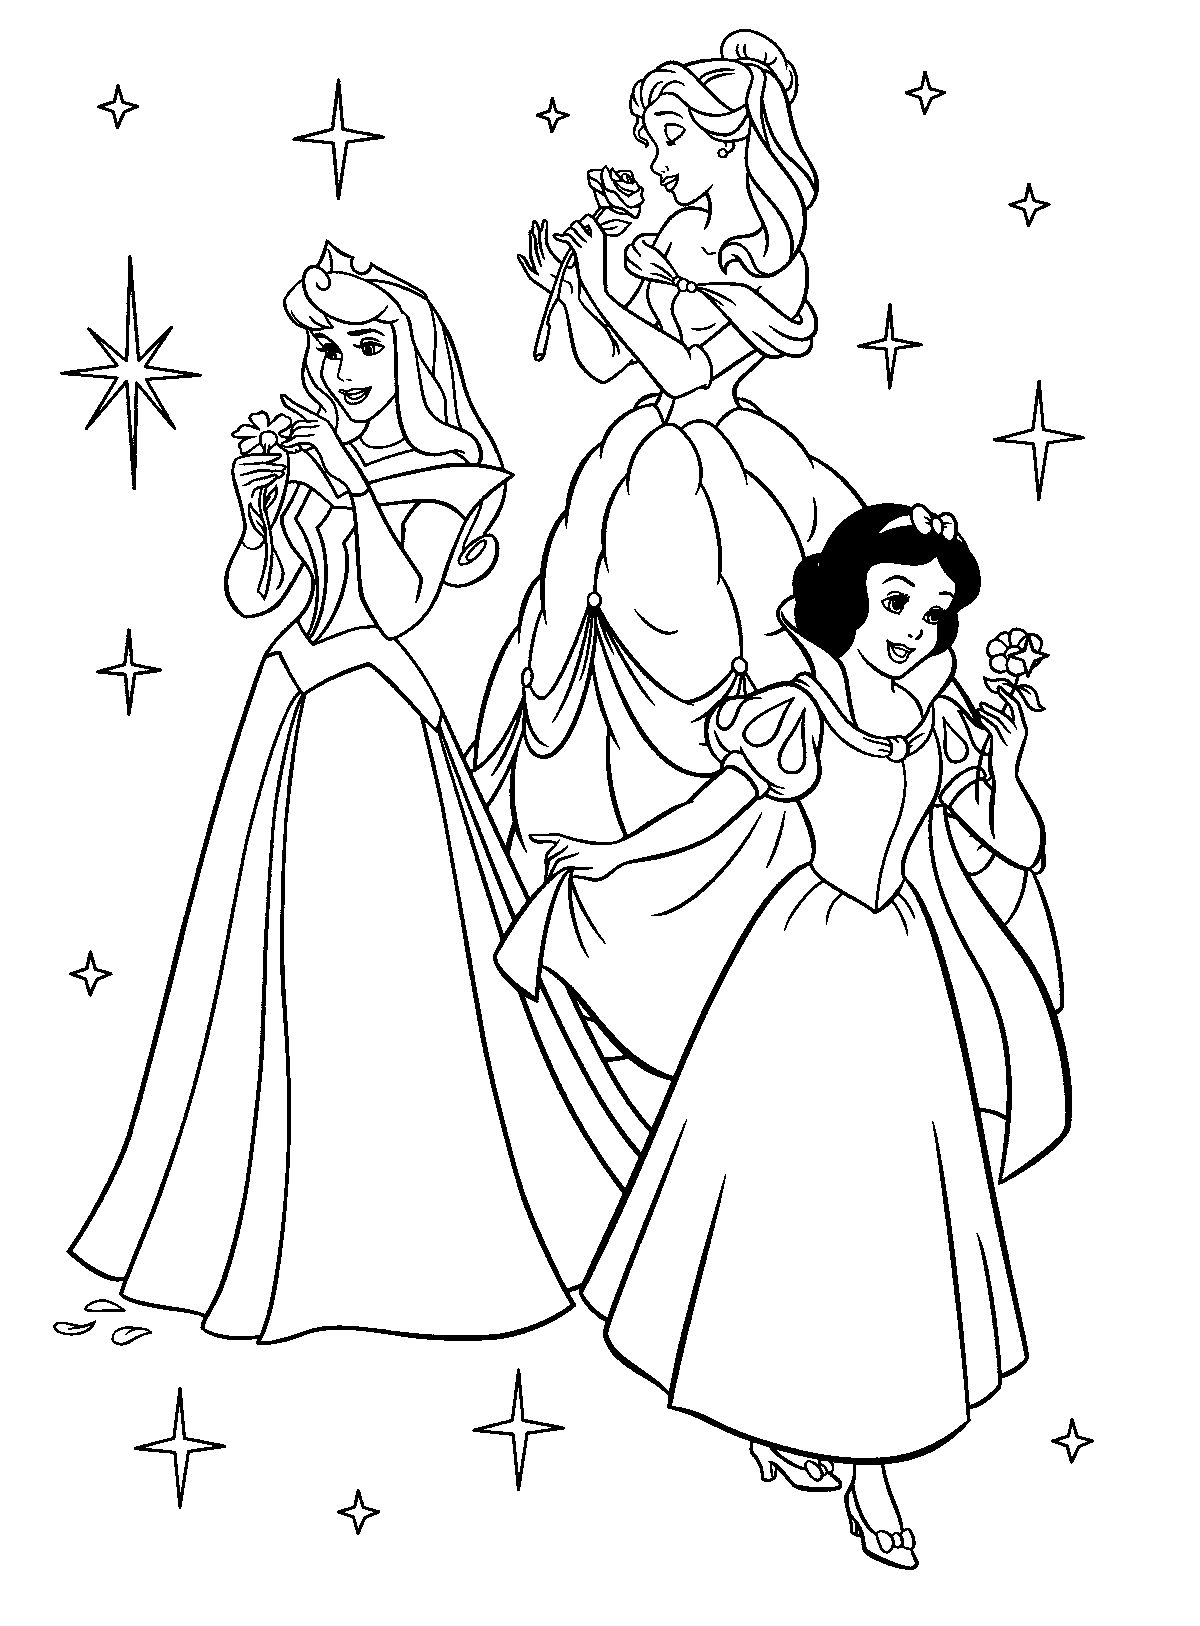 princess coloring pages printable Free Printable Disney Princess Coloring Pages For Kids | Színezők  princess coloring pages printable